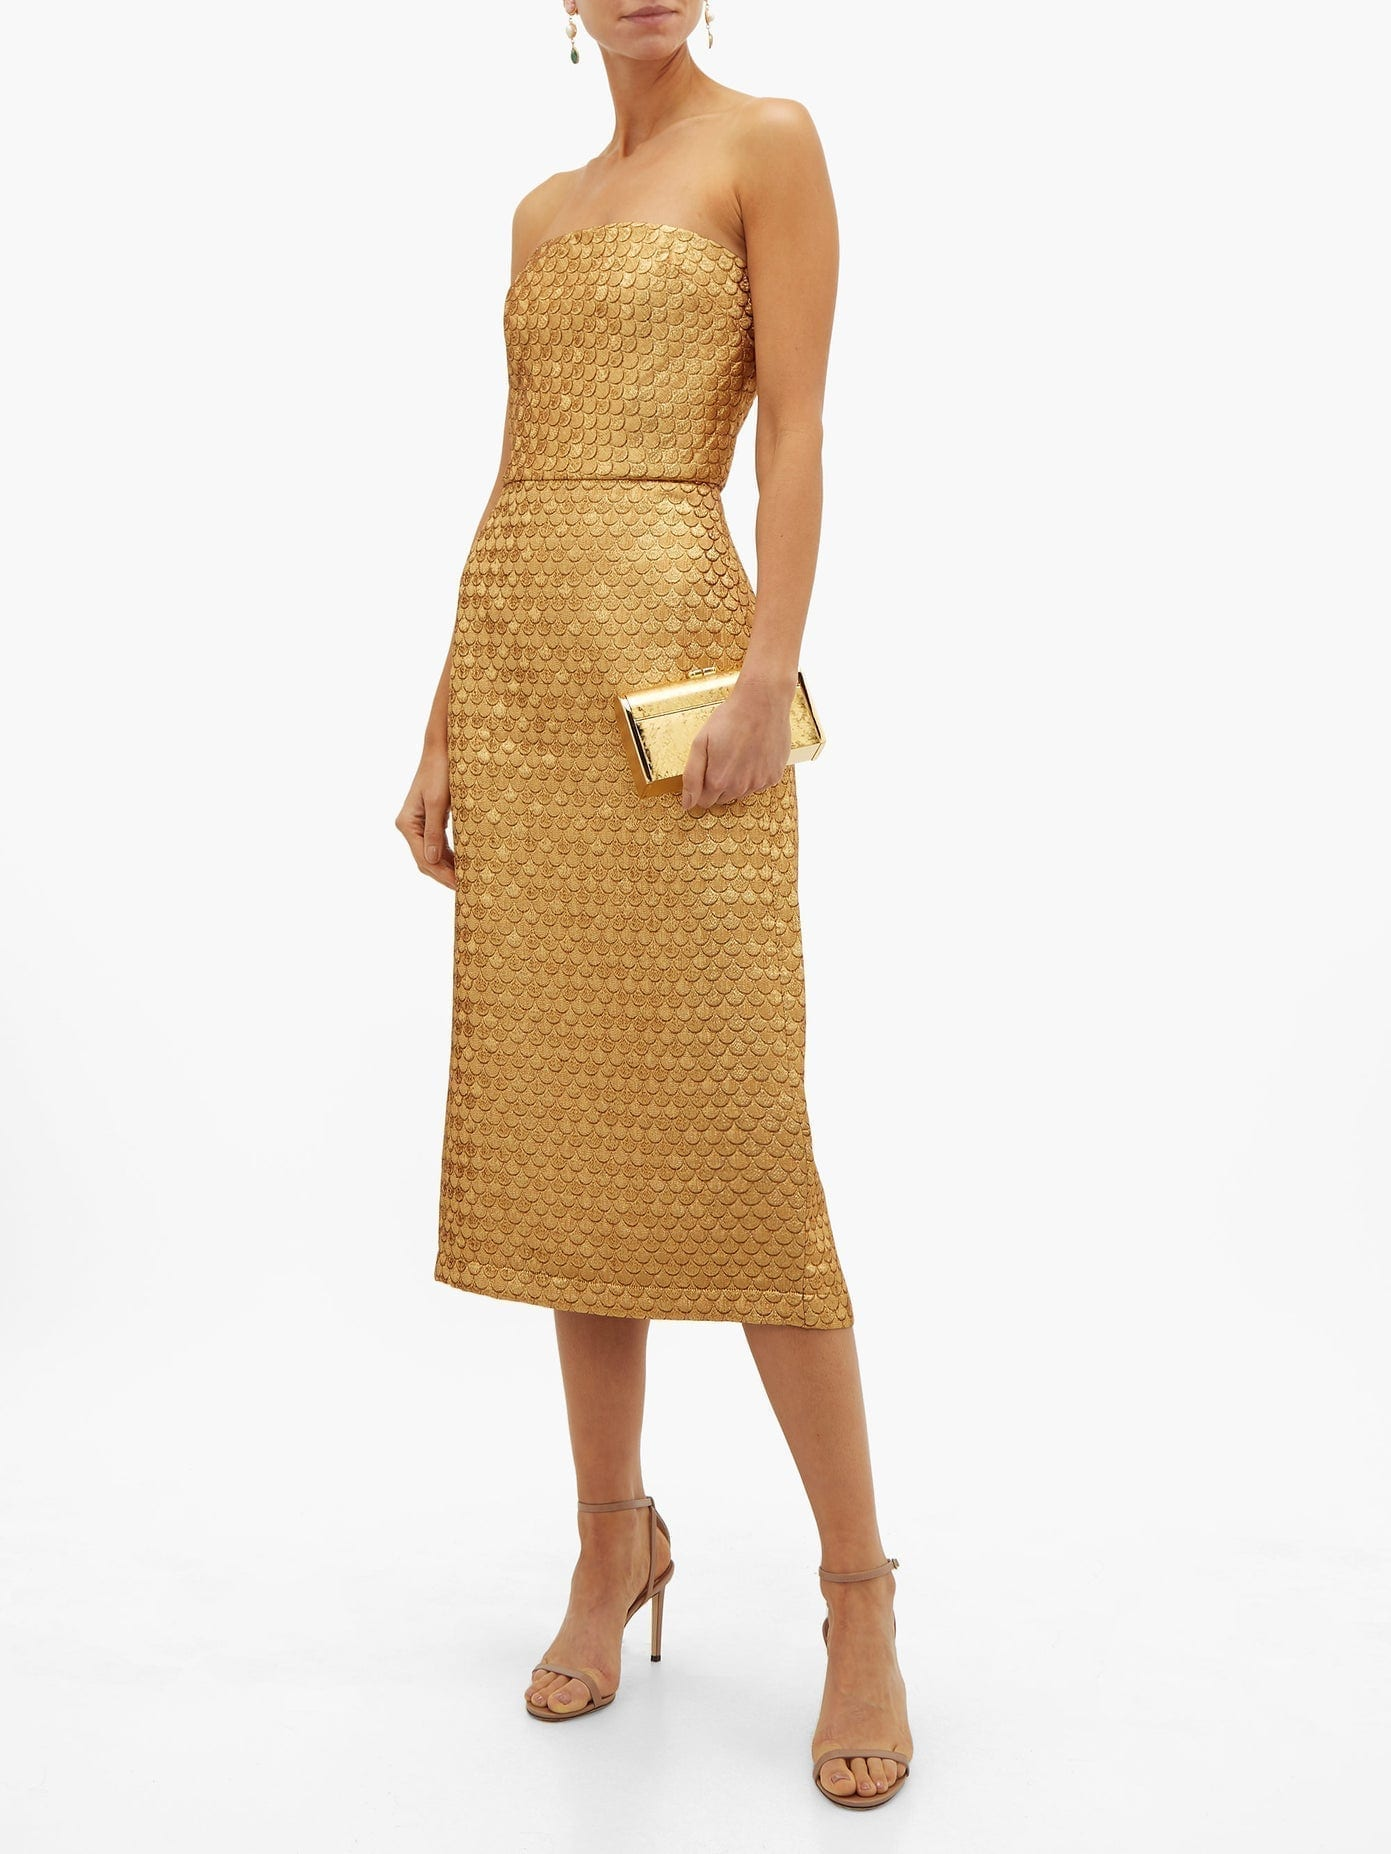 JOHANNA ORTIZ Pesca Brocade Midi Dress